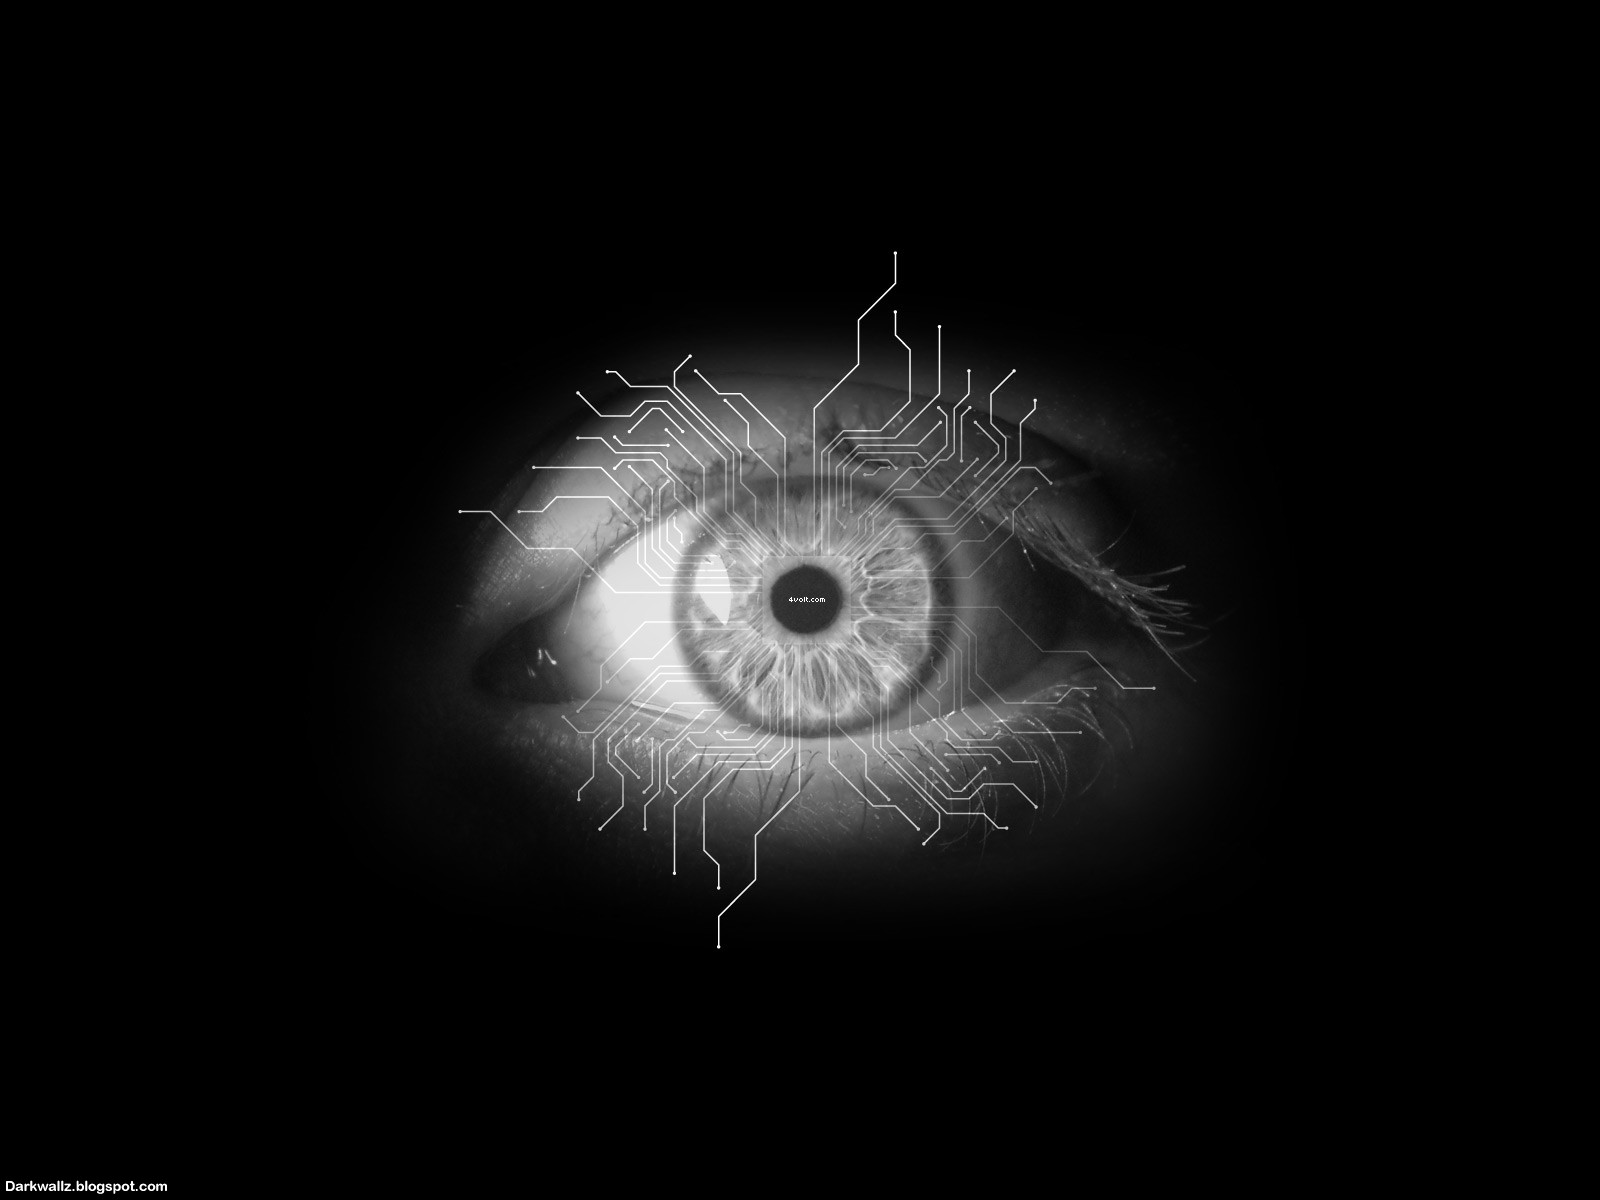 Scary Eyes Wallpapers 59| Dark Wallpaper Download